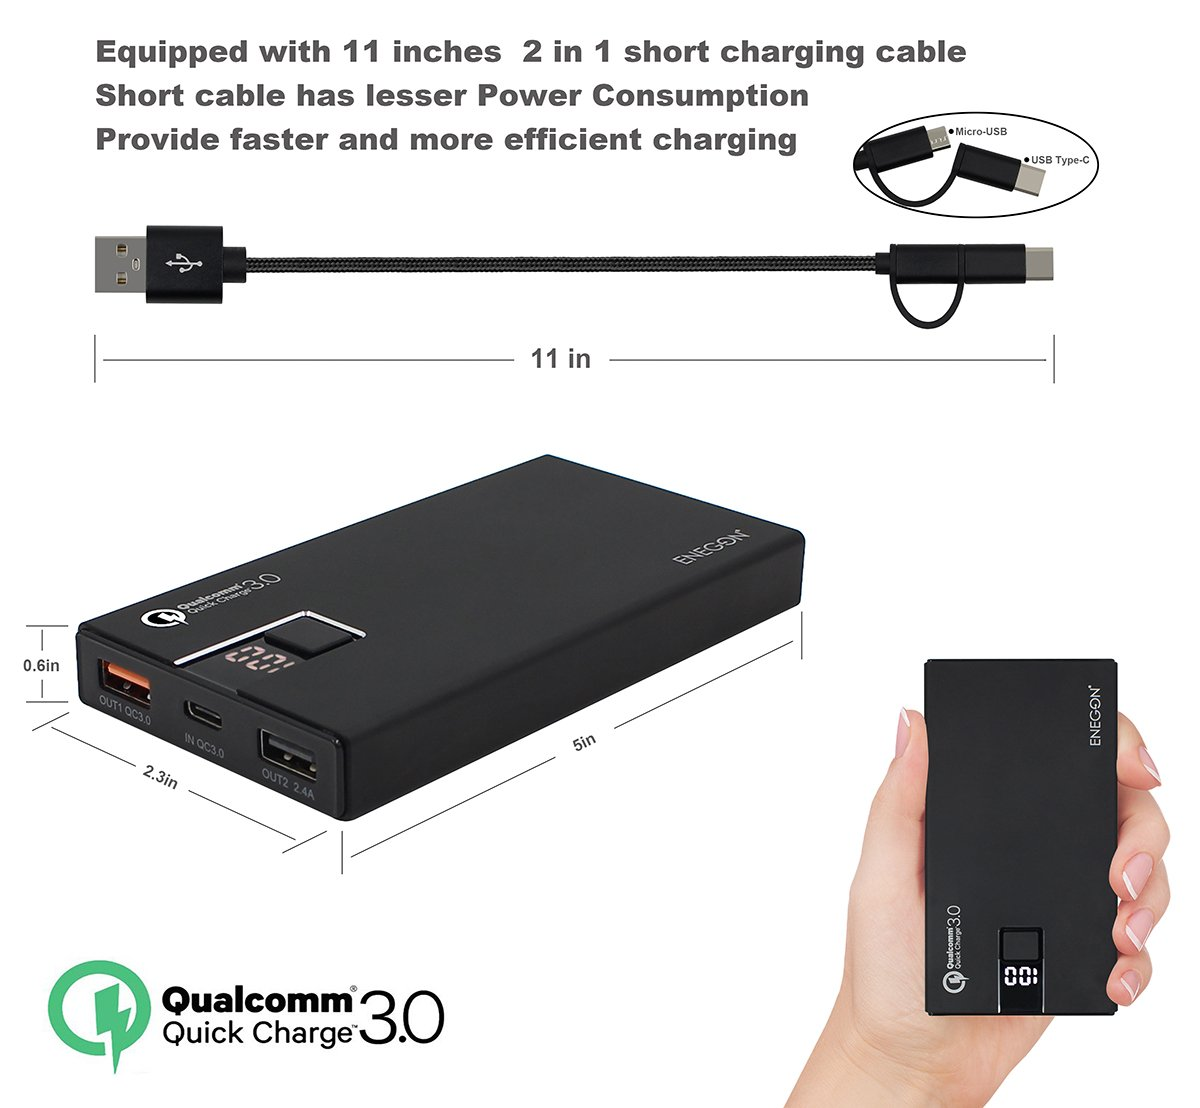 Qualcomm Quick Charge 3.0 ENEGON 10000mAh Portable Power Bank Bidirectional QC3.0 Input & Output, with Type-C Input, External Battery Charger for Galaxy S6 ...